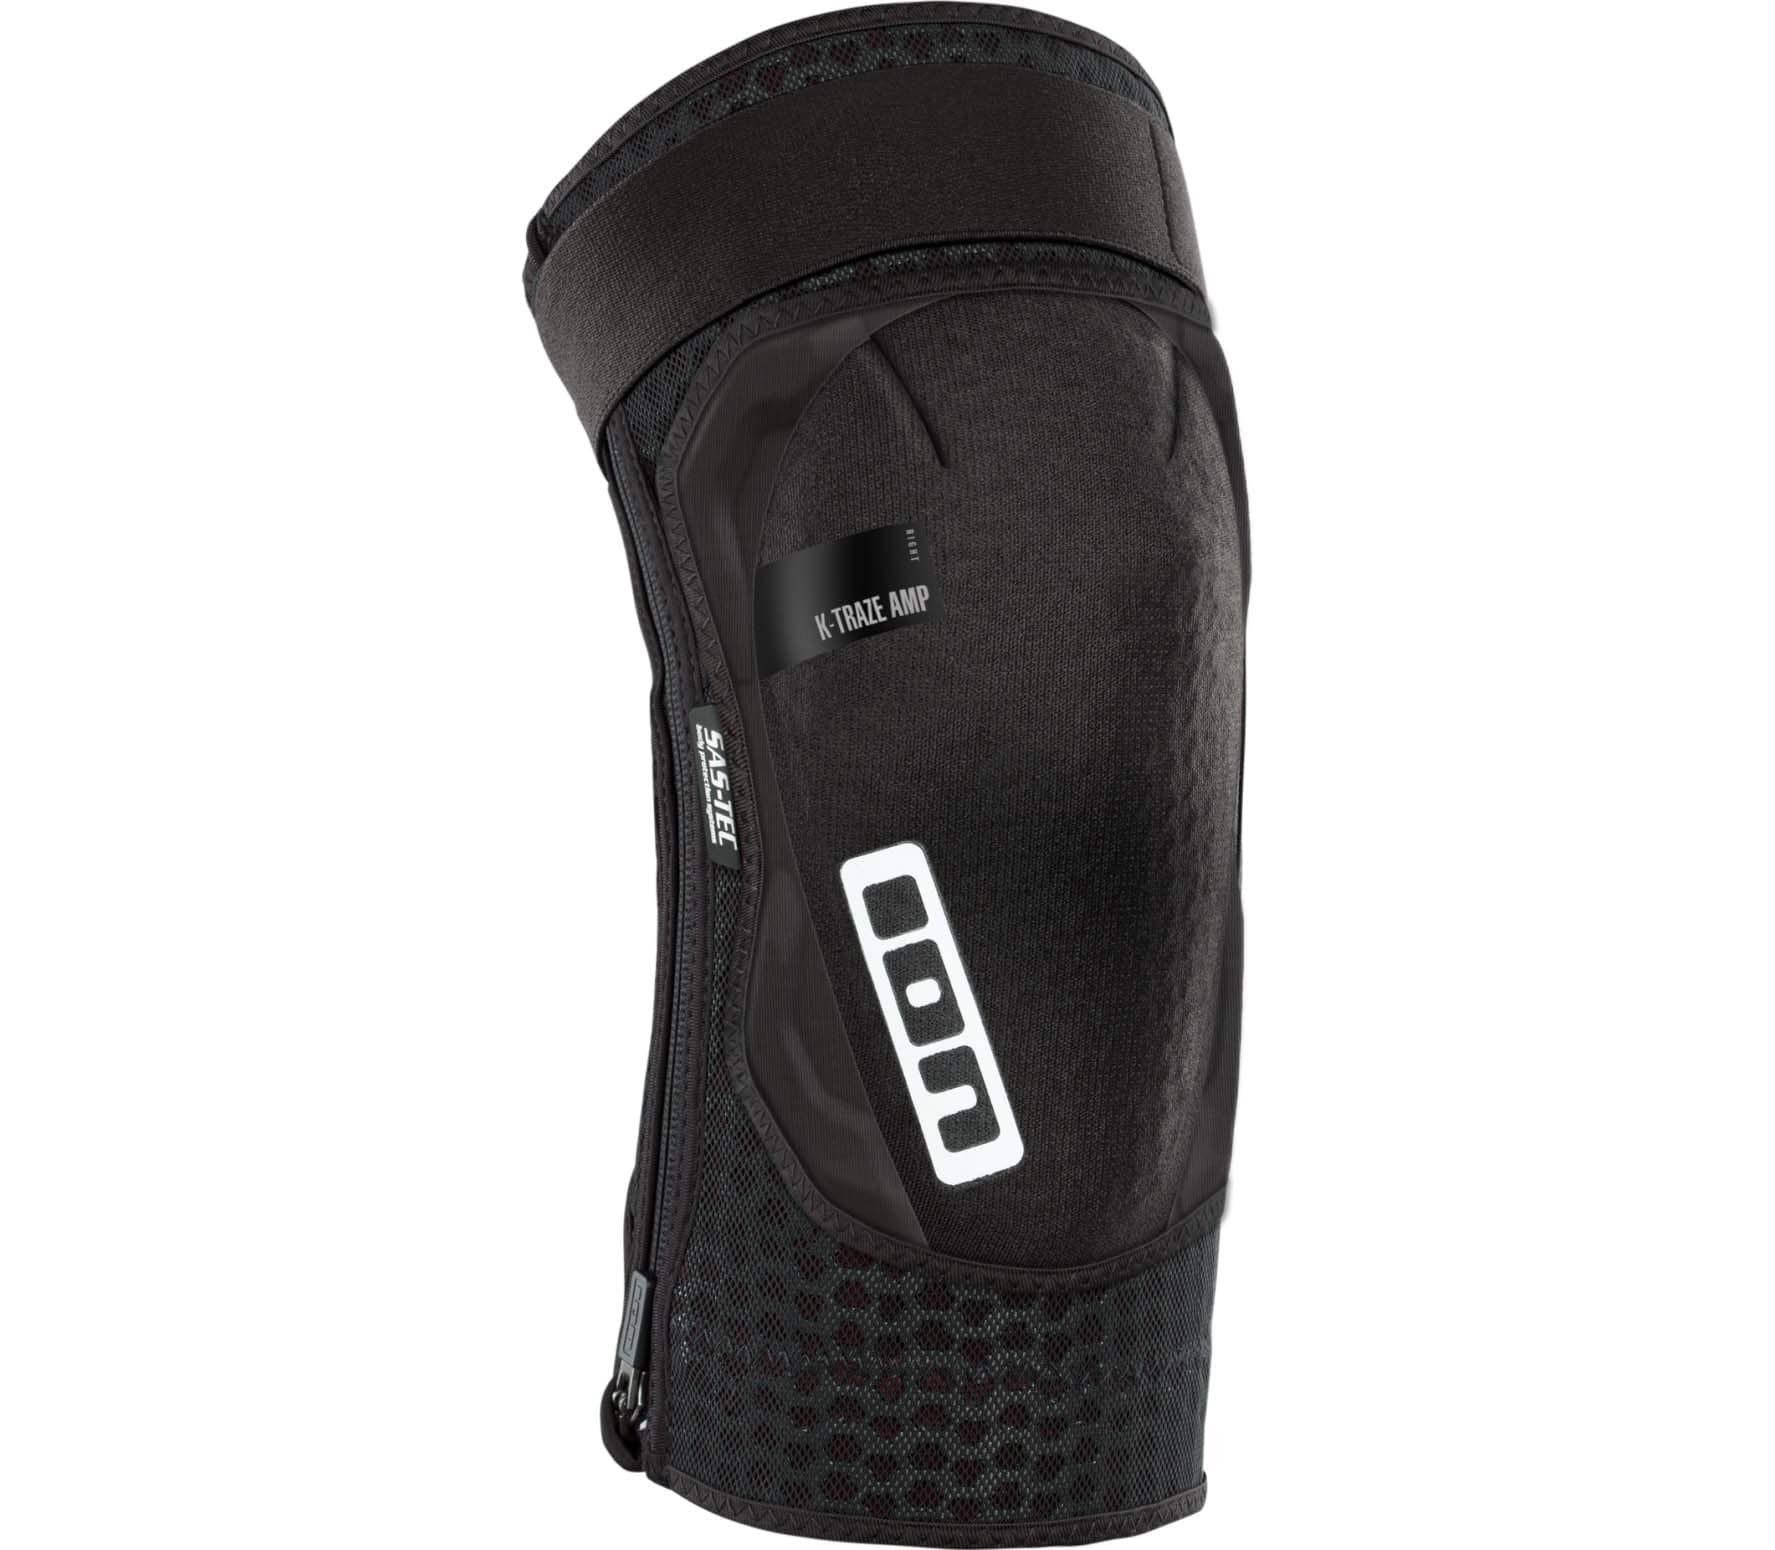 K-Traze Amp Unisex Knee Protection